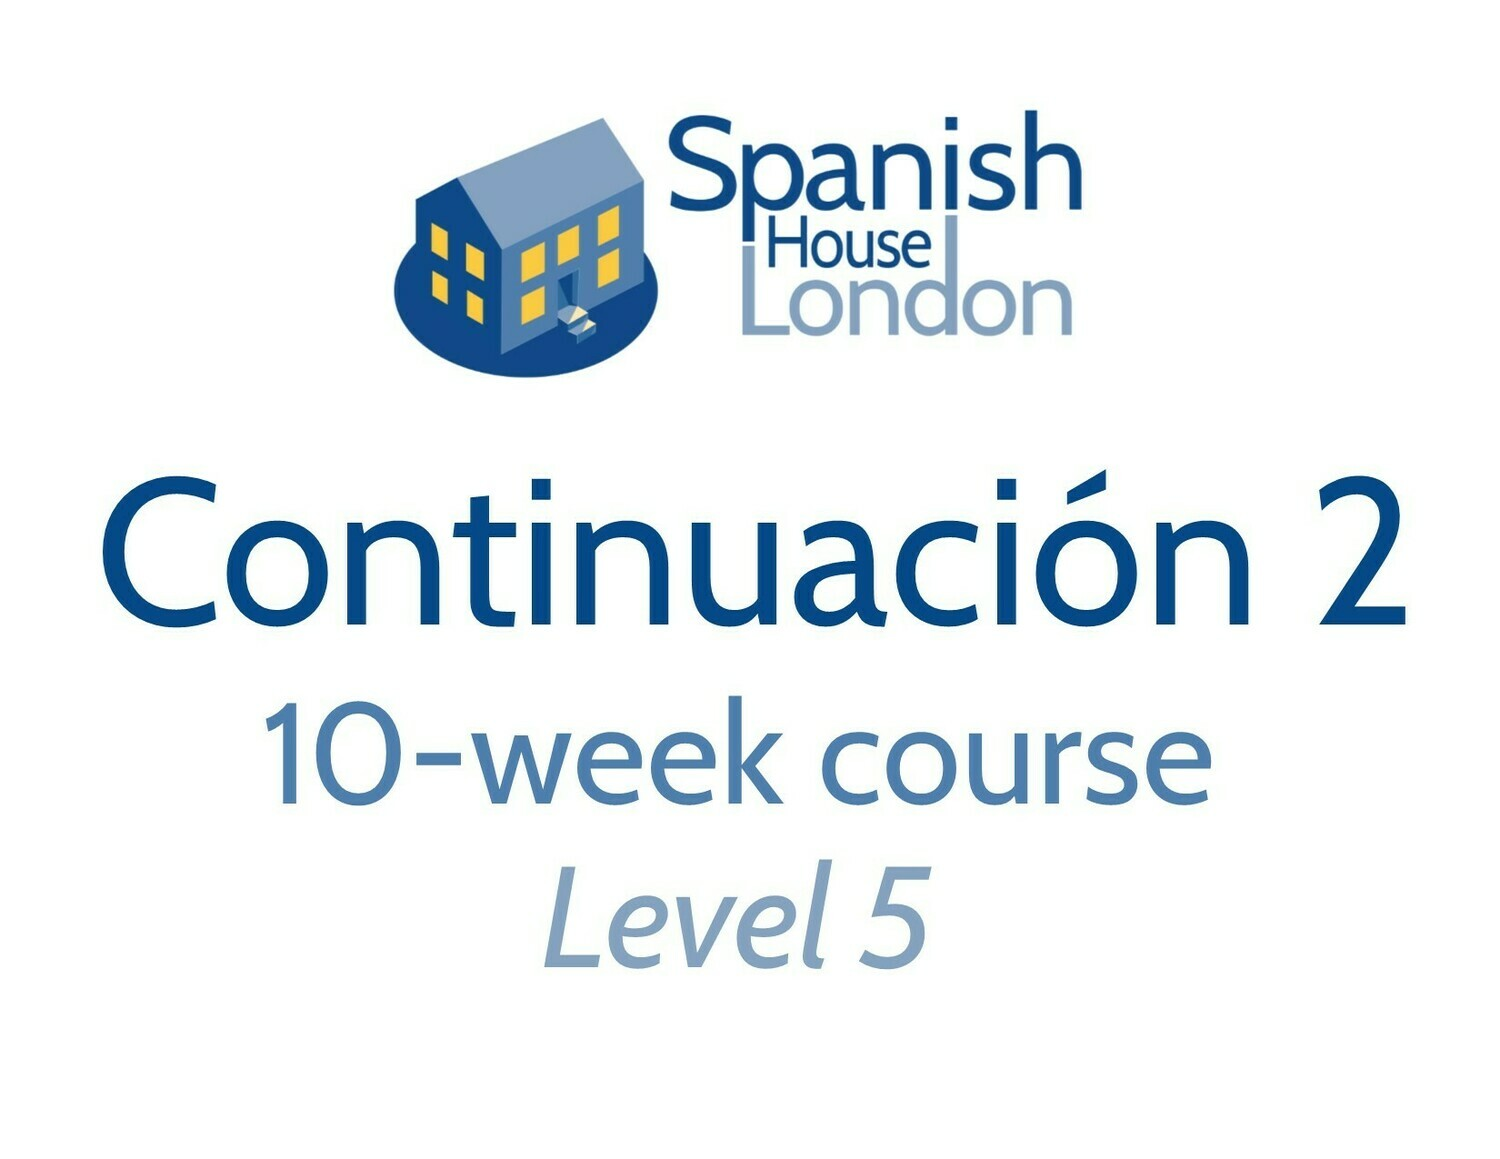 Continuacion 2 Course starting on 9th September at 6pm